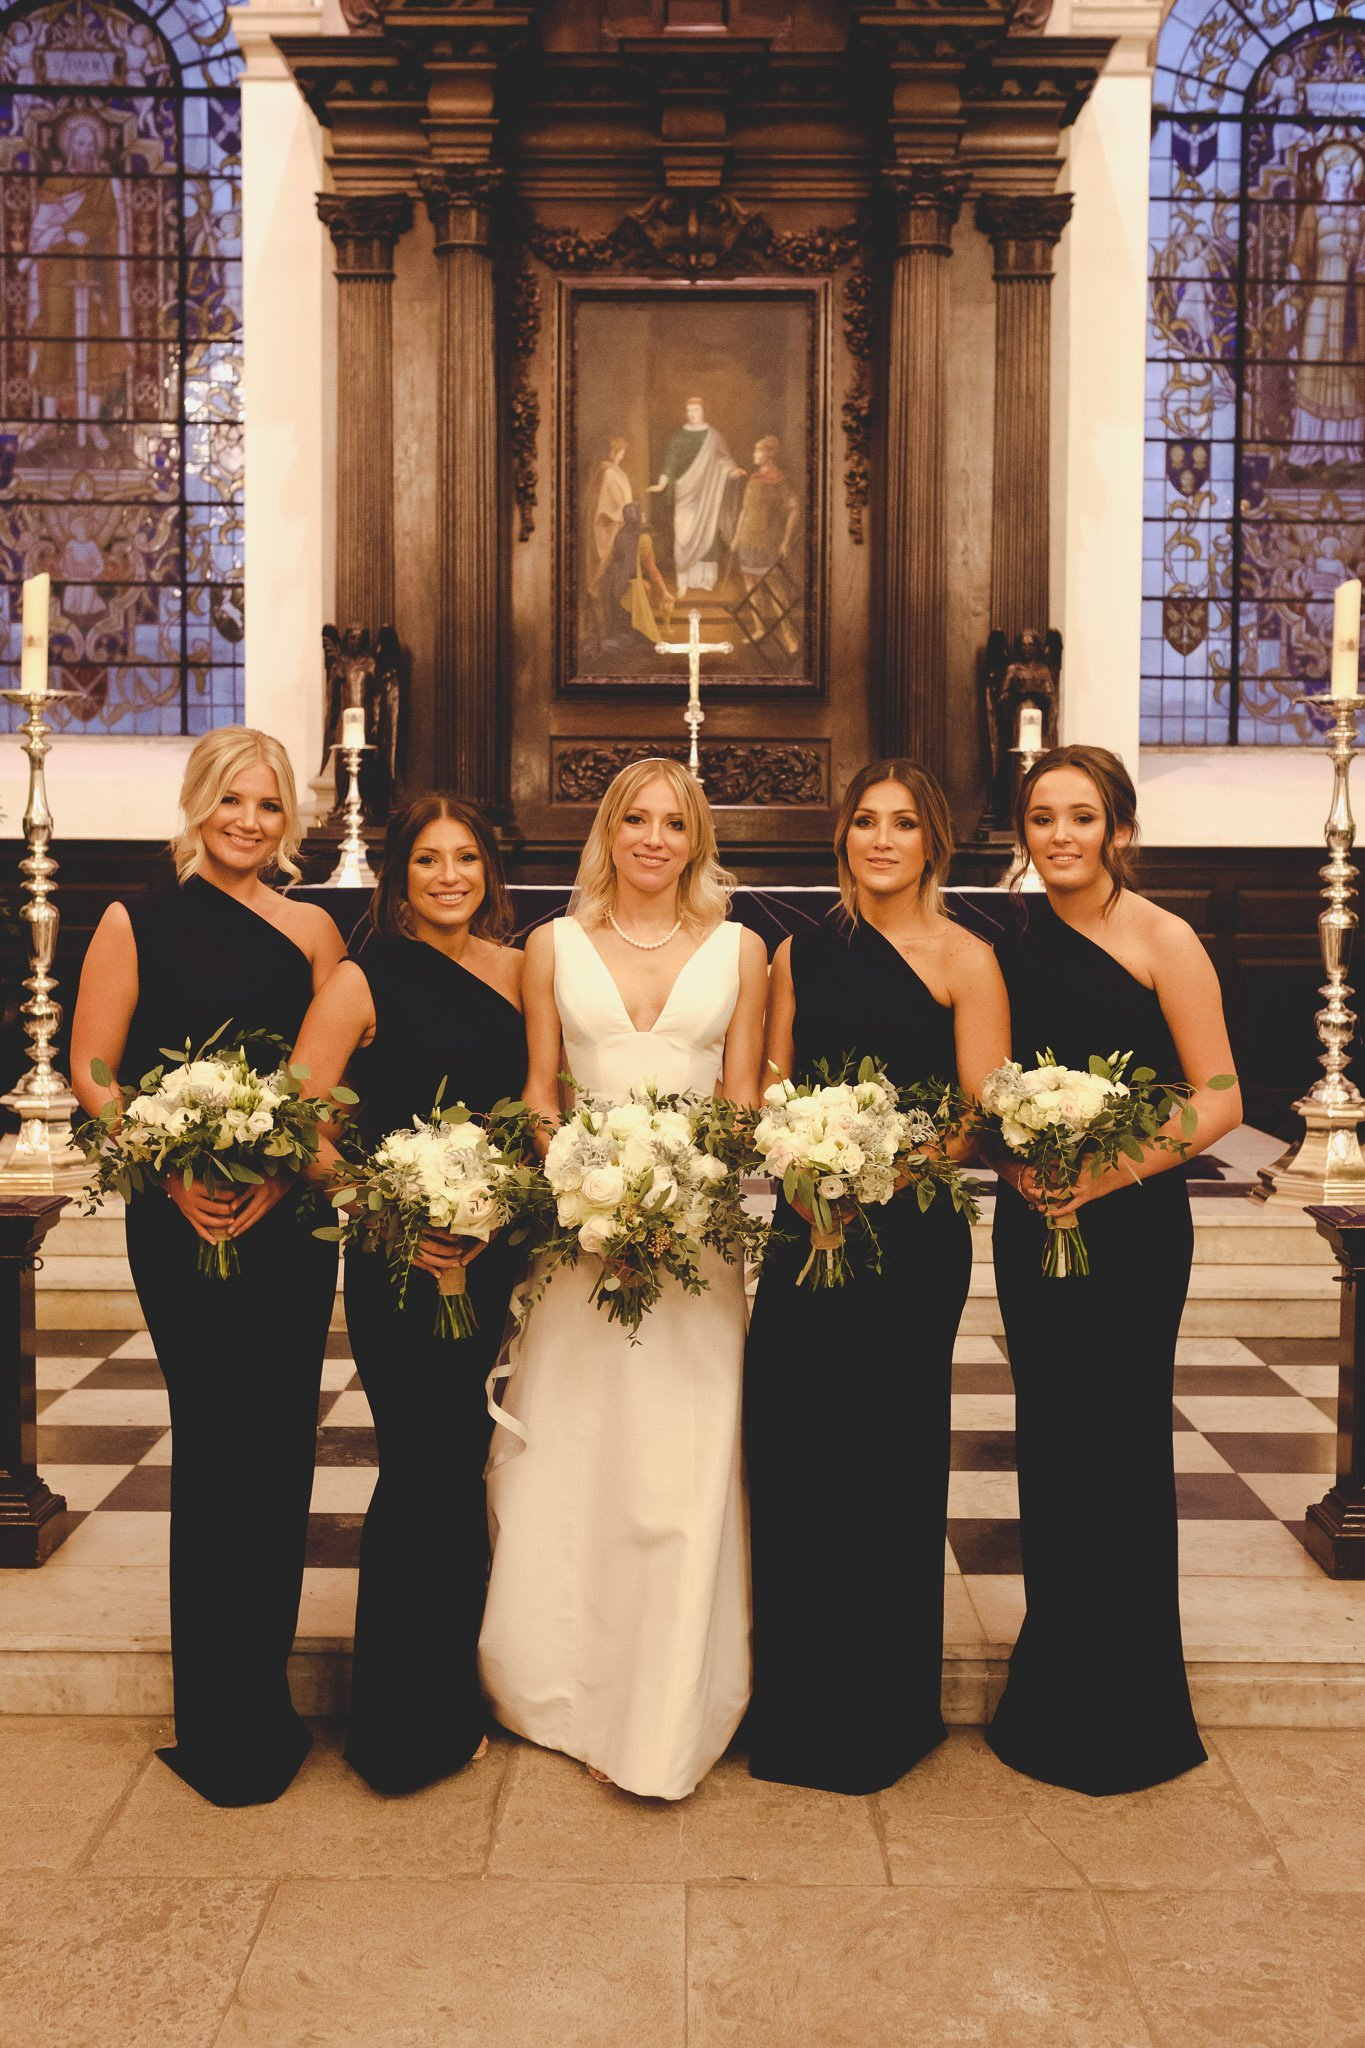 Bride & Bridesmaids at St Lawrence Jewry wedding Guildhall